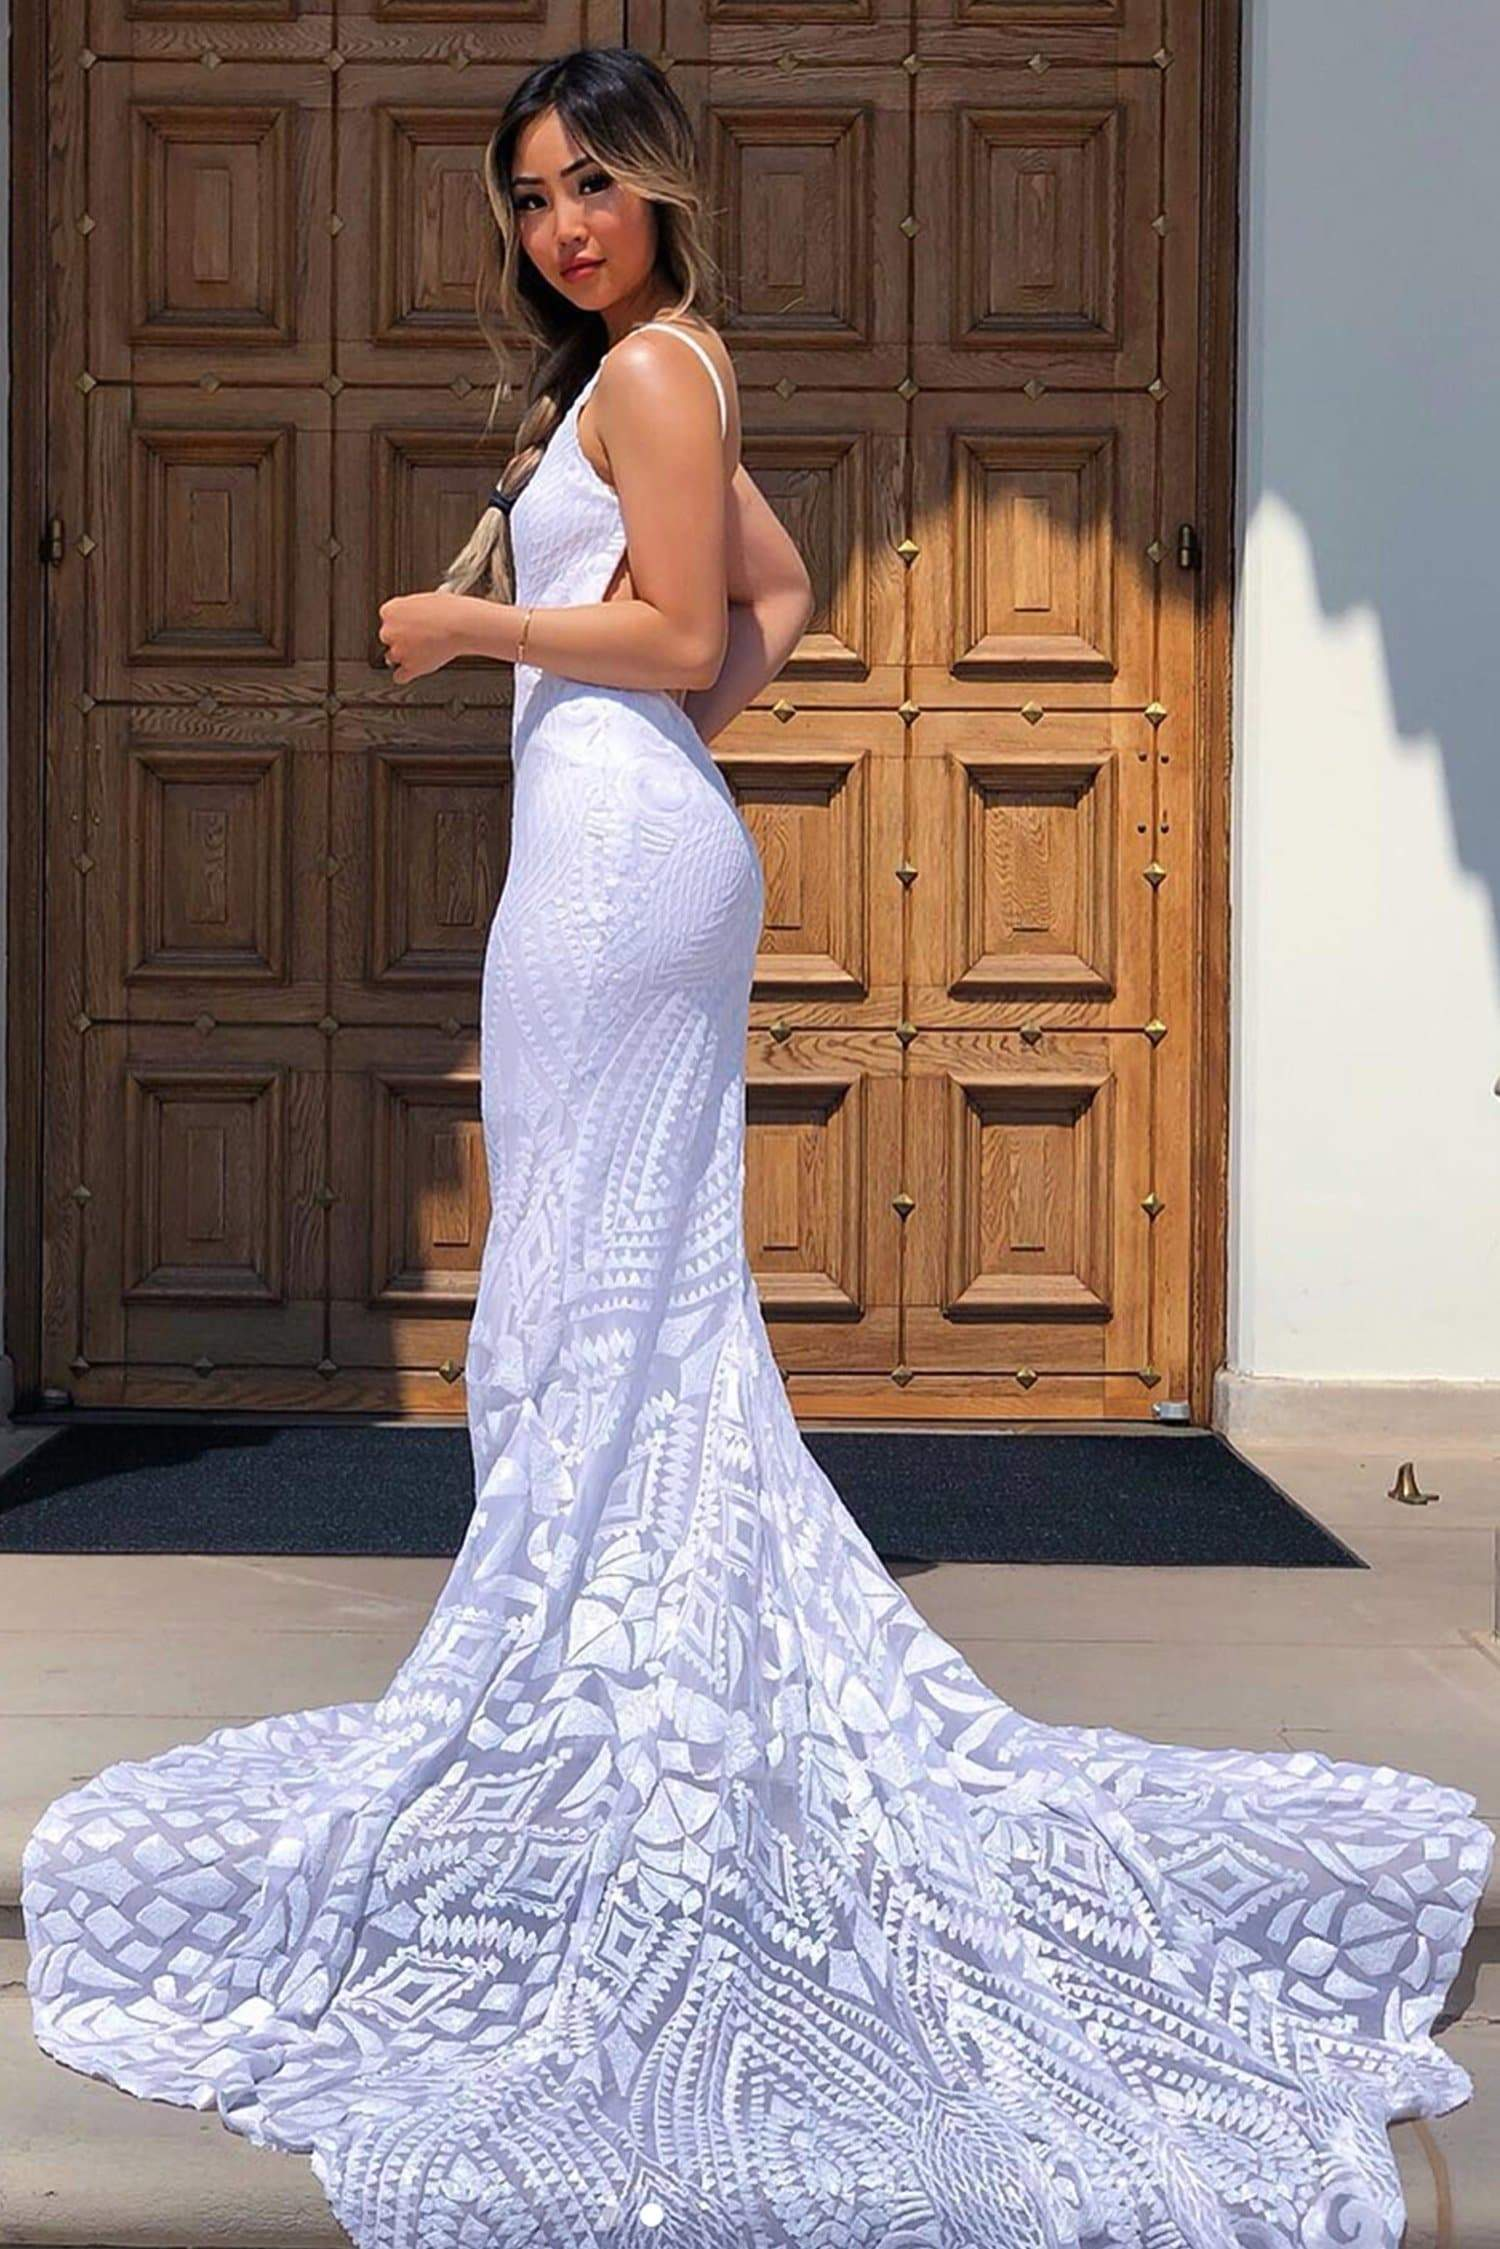 A&N Mariana - White Patterned Sequins Mermaid Gown with Low Back